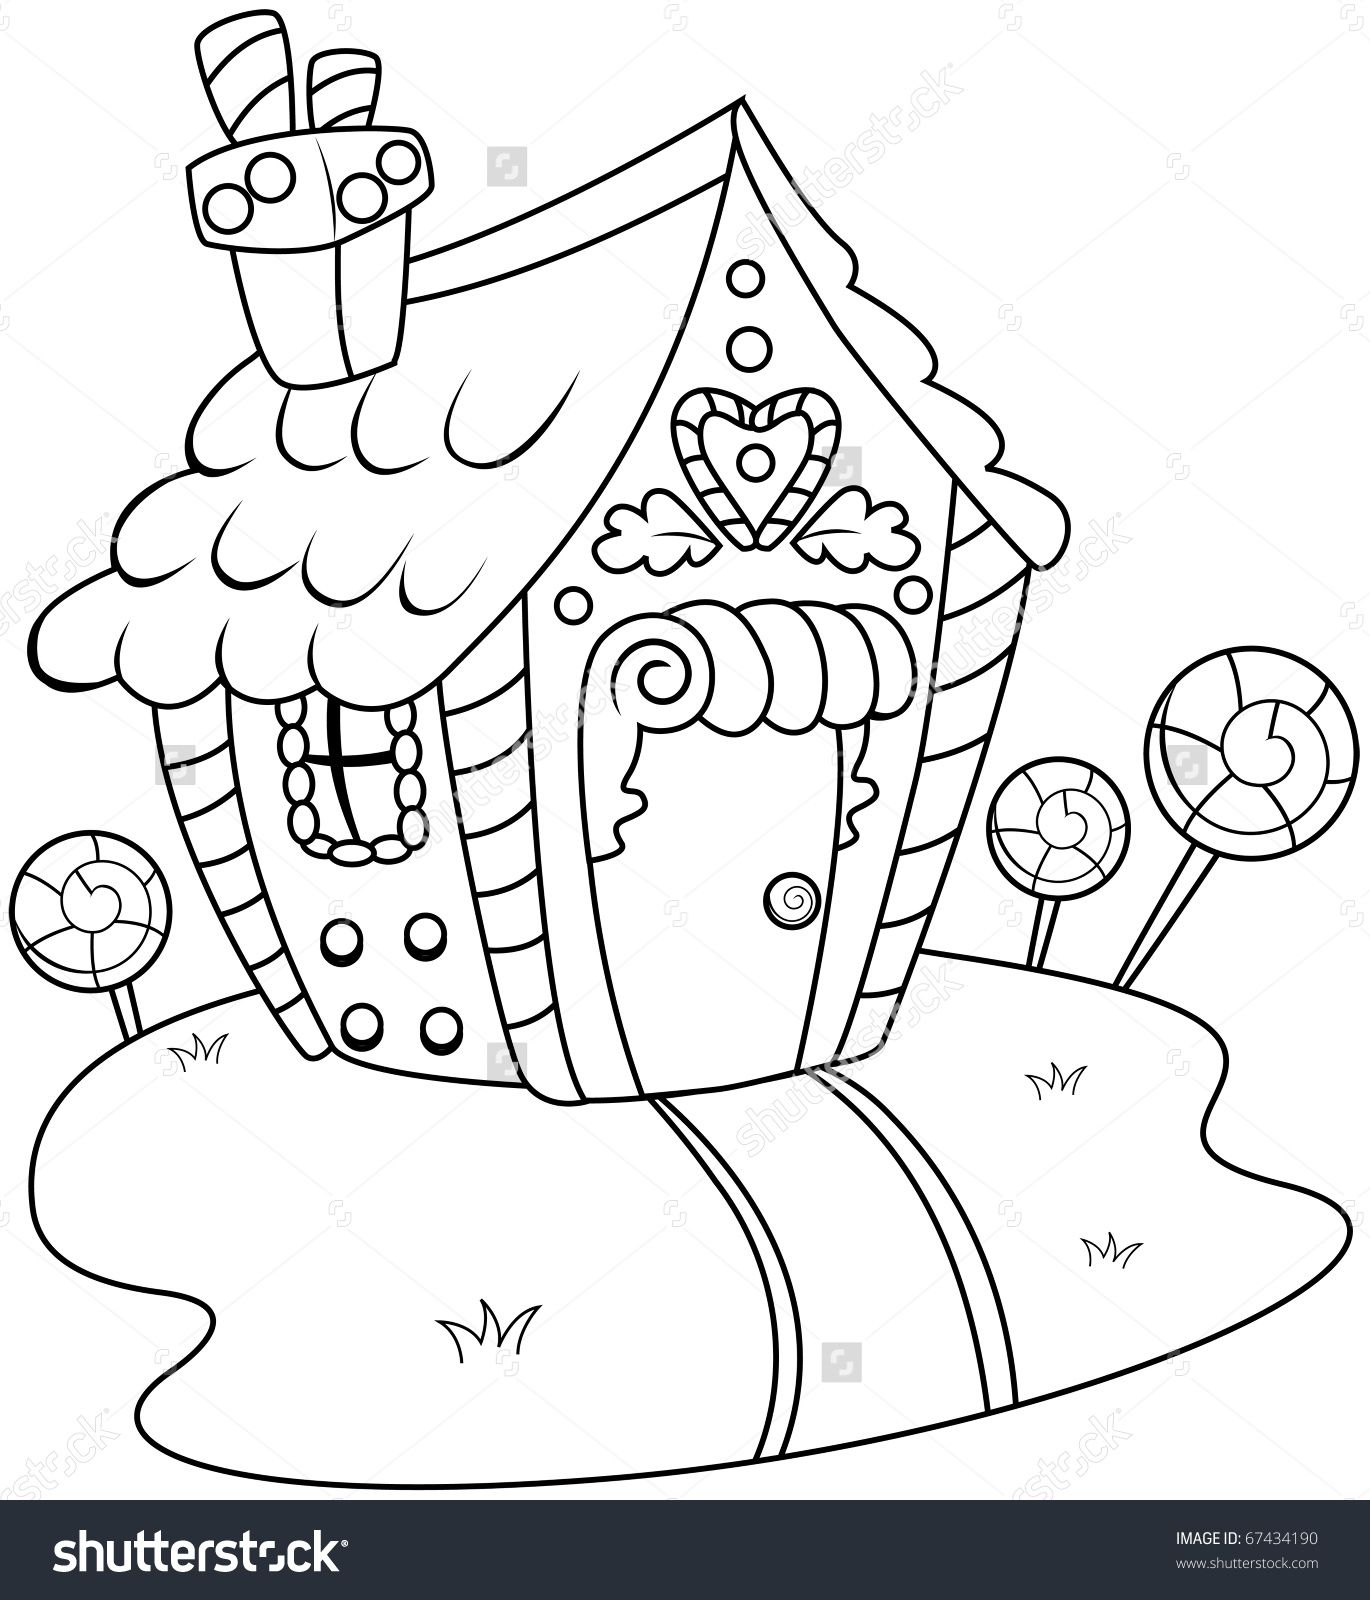 Hansel and gretel coloring page sbmass com